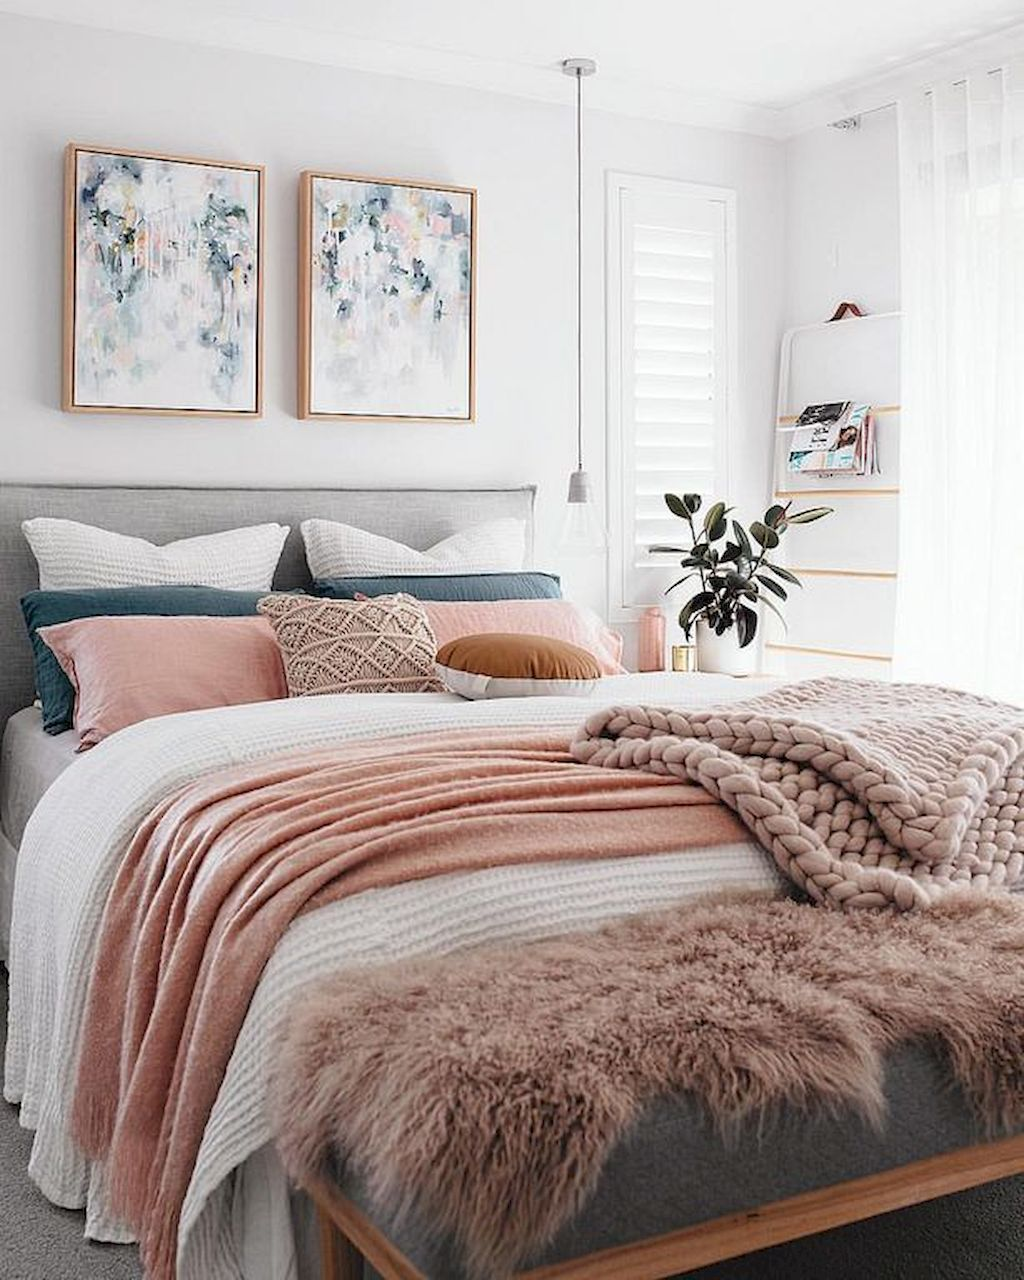 30 Small Master Bedroom Ideas images